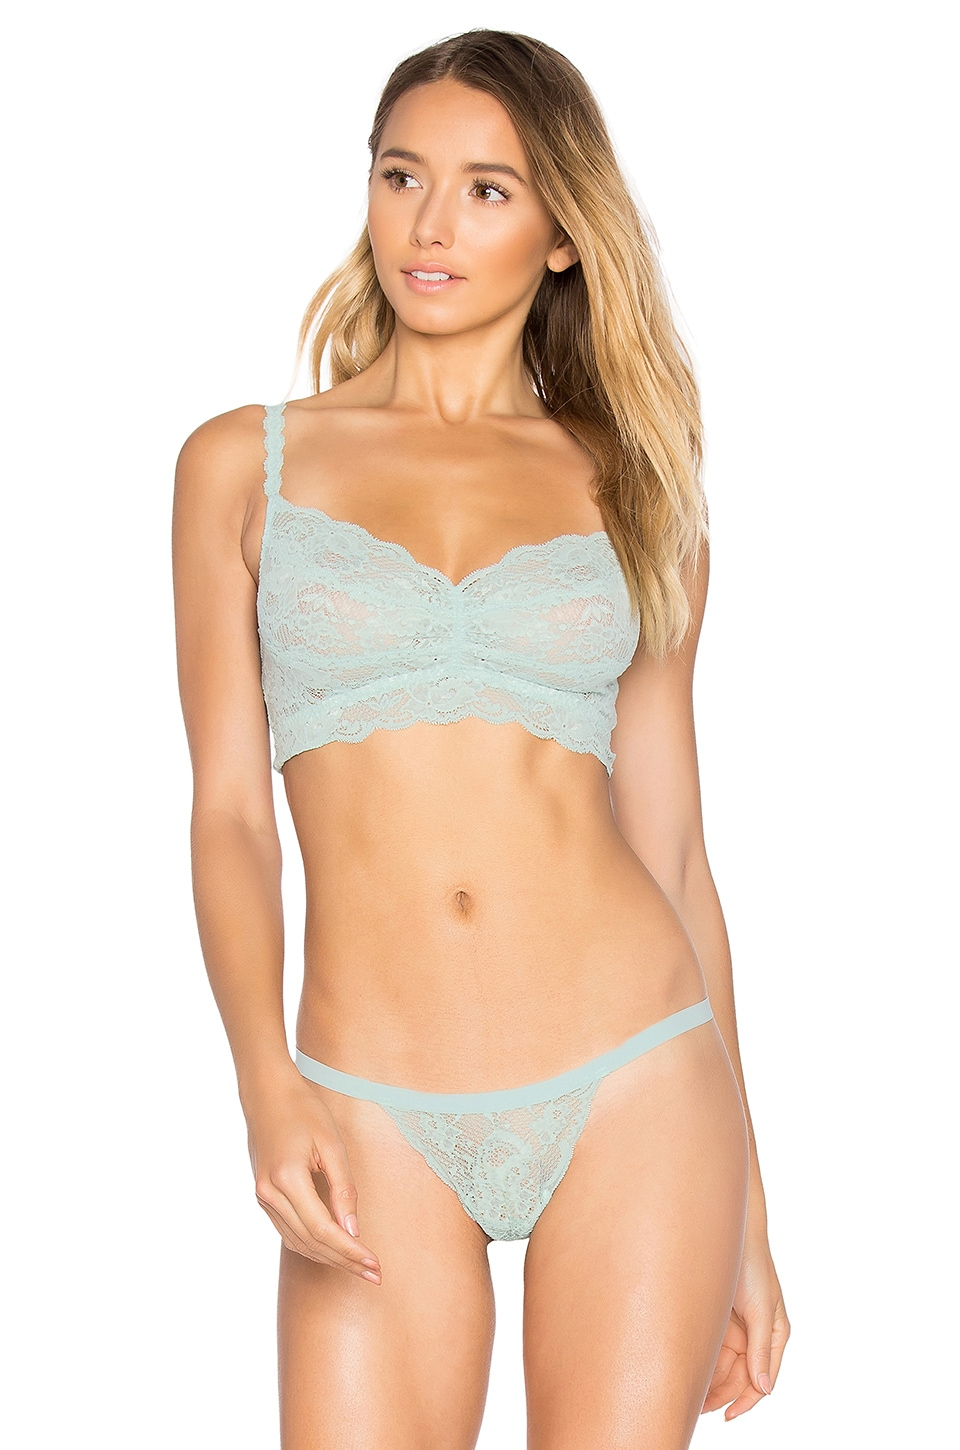 Never Say Never Sweetie Soft Bra by Cosabella